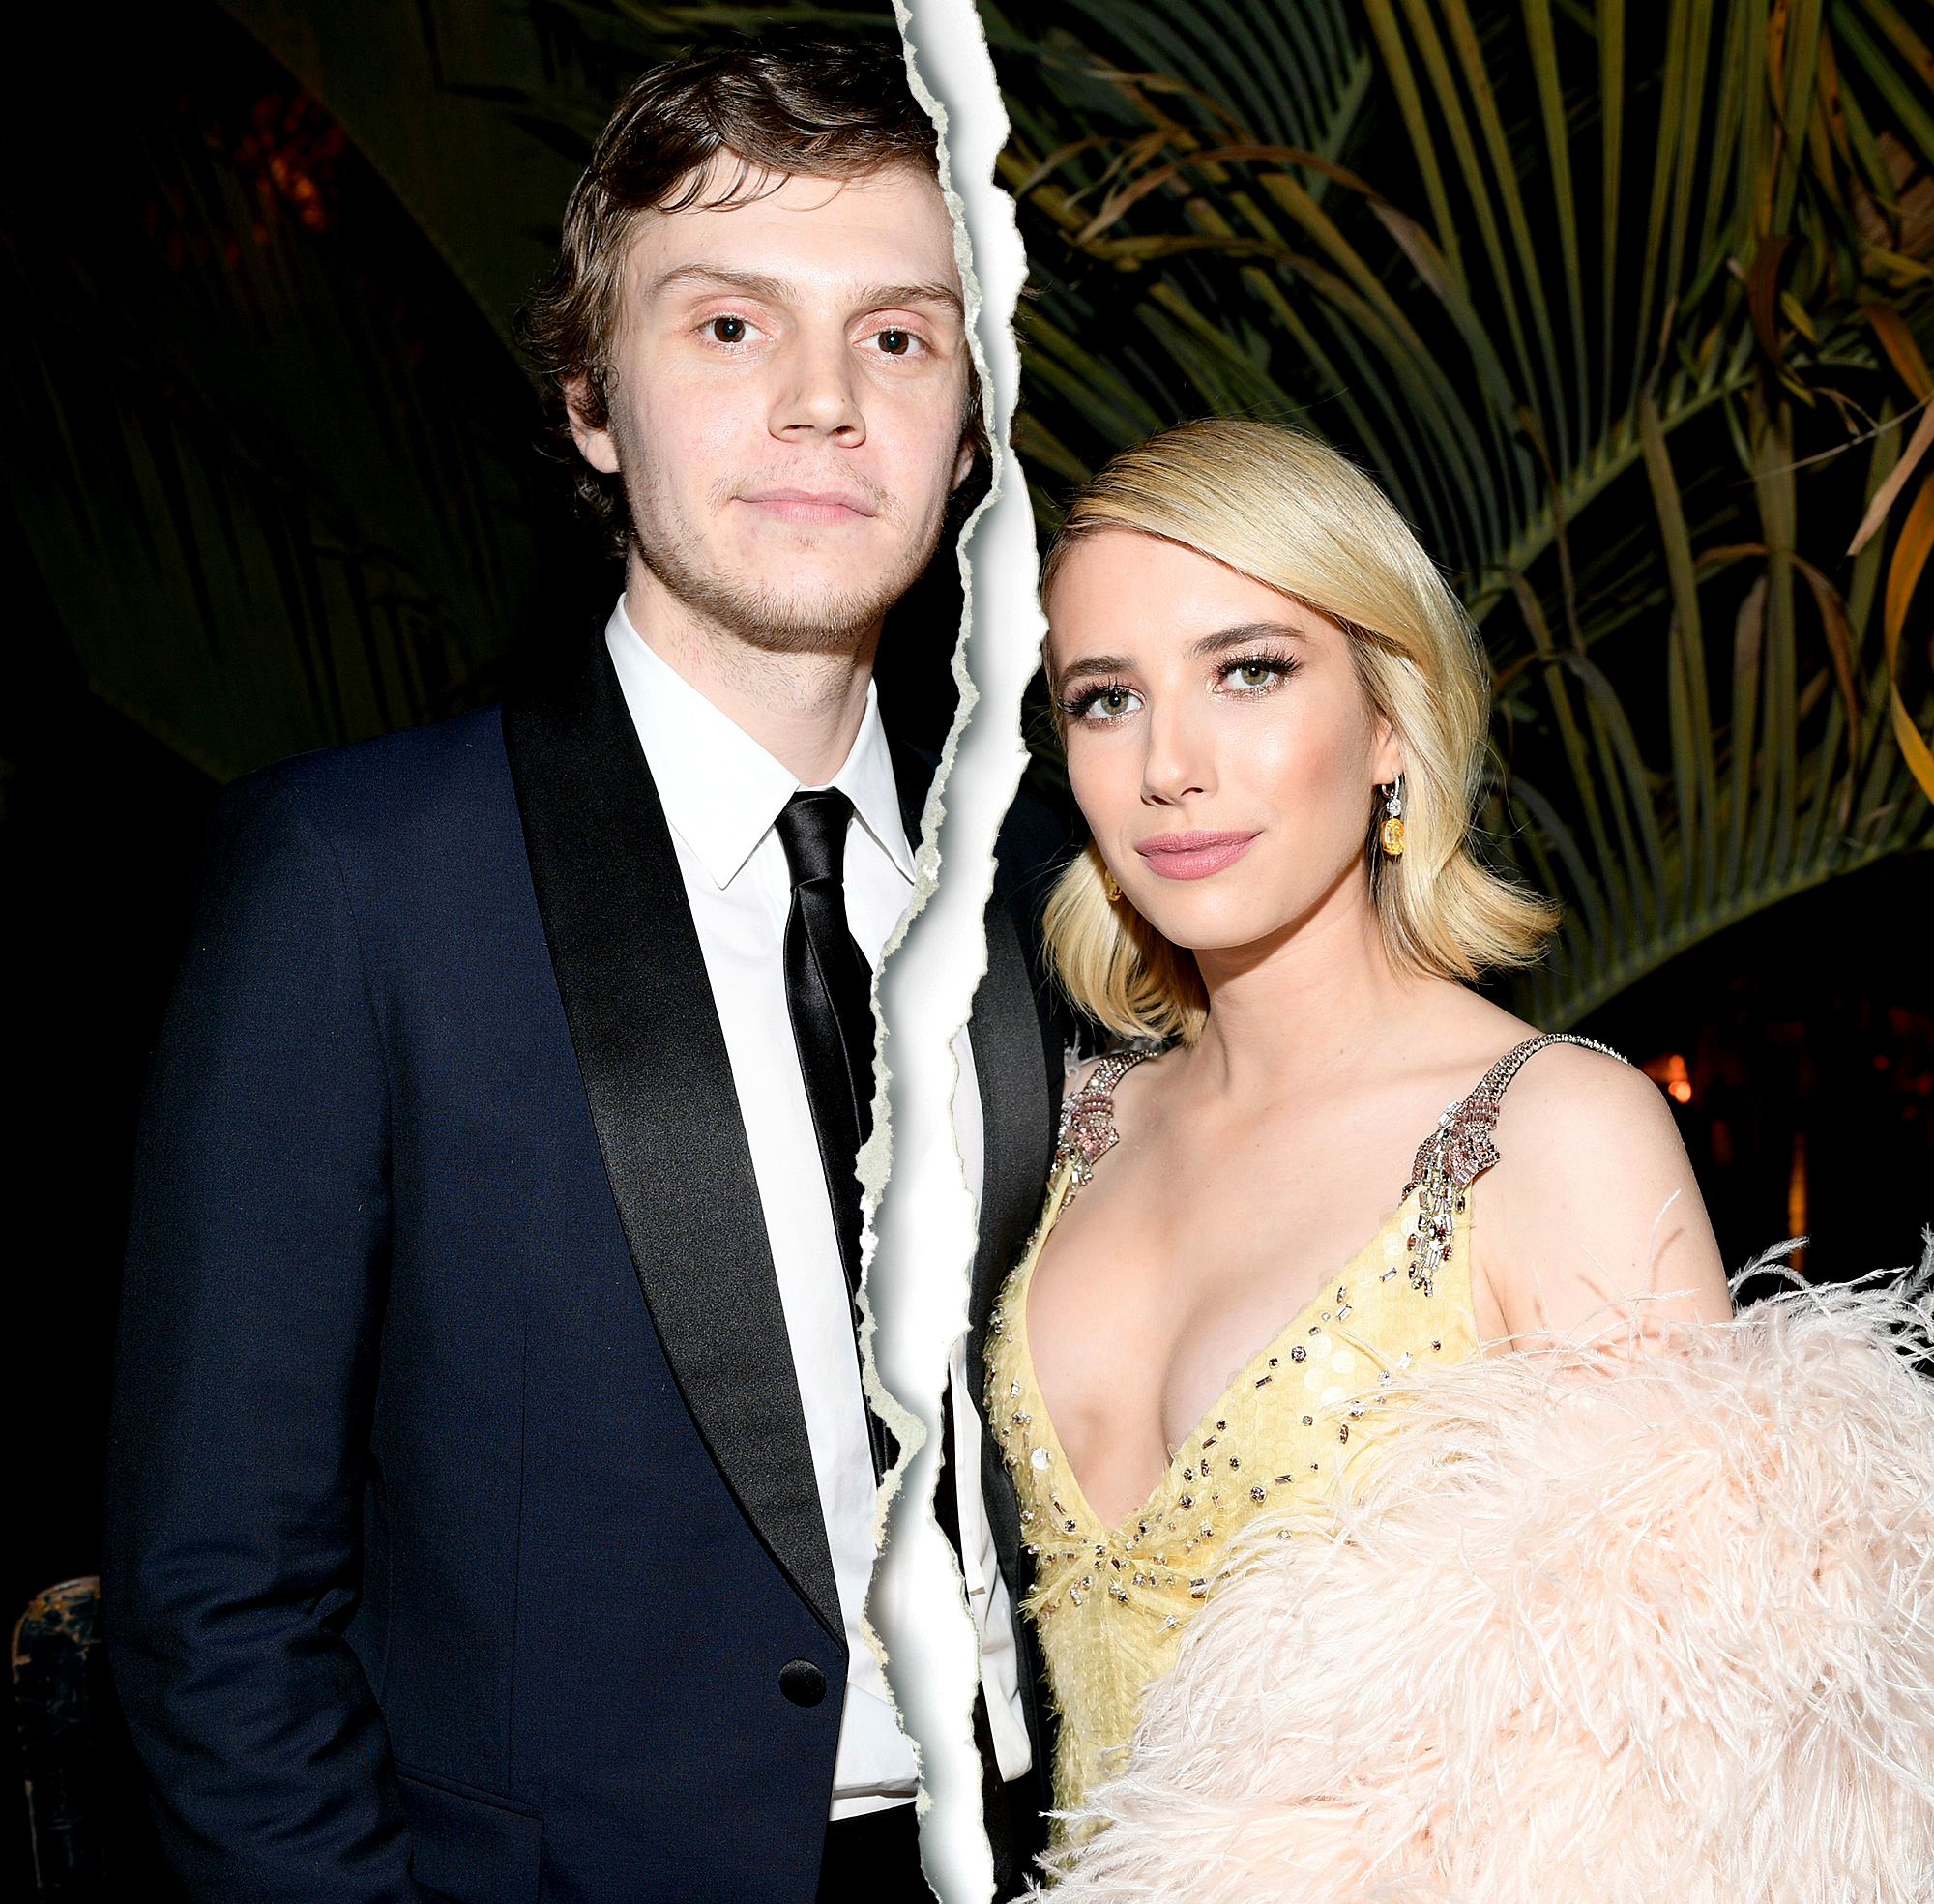 Emma-Roberts-Splits-With-Evan-Peters